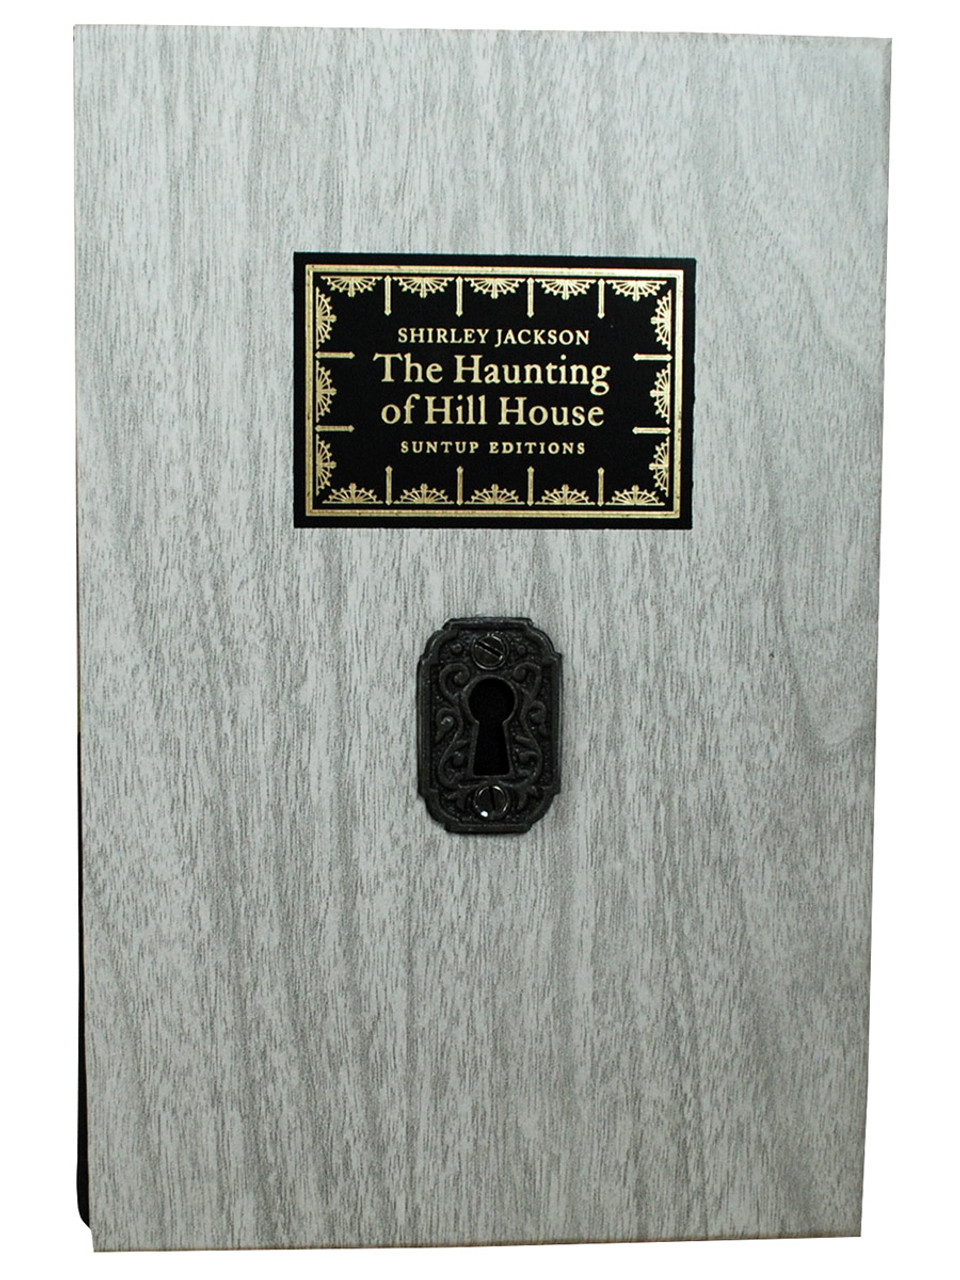 """Shirley Jackson """"The Haunting of Hill House"""" Signed Limited Edition No. 90 of 185 [Very Fine]"""